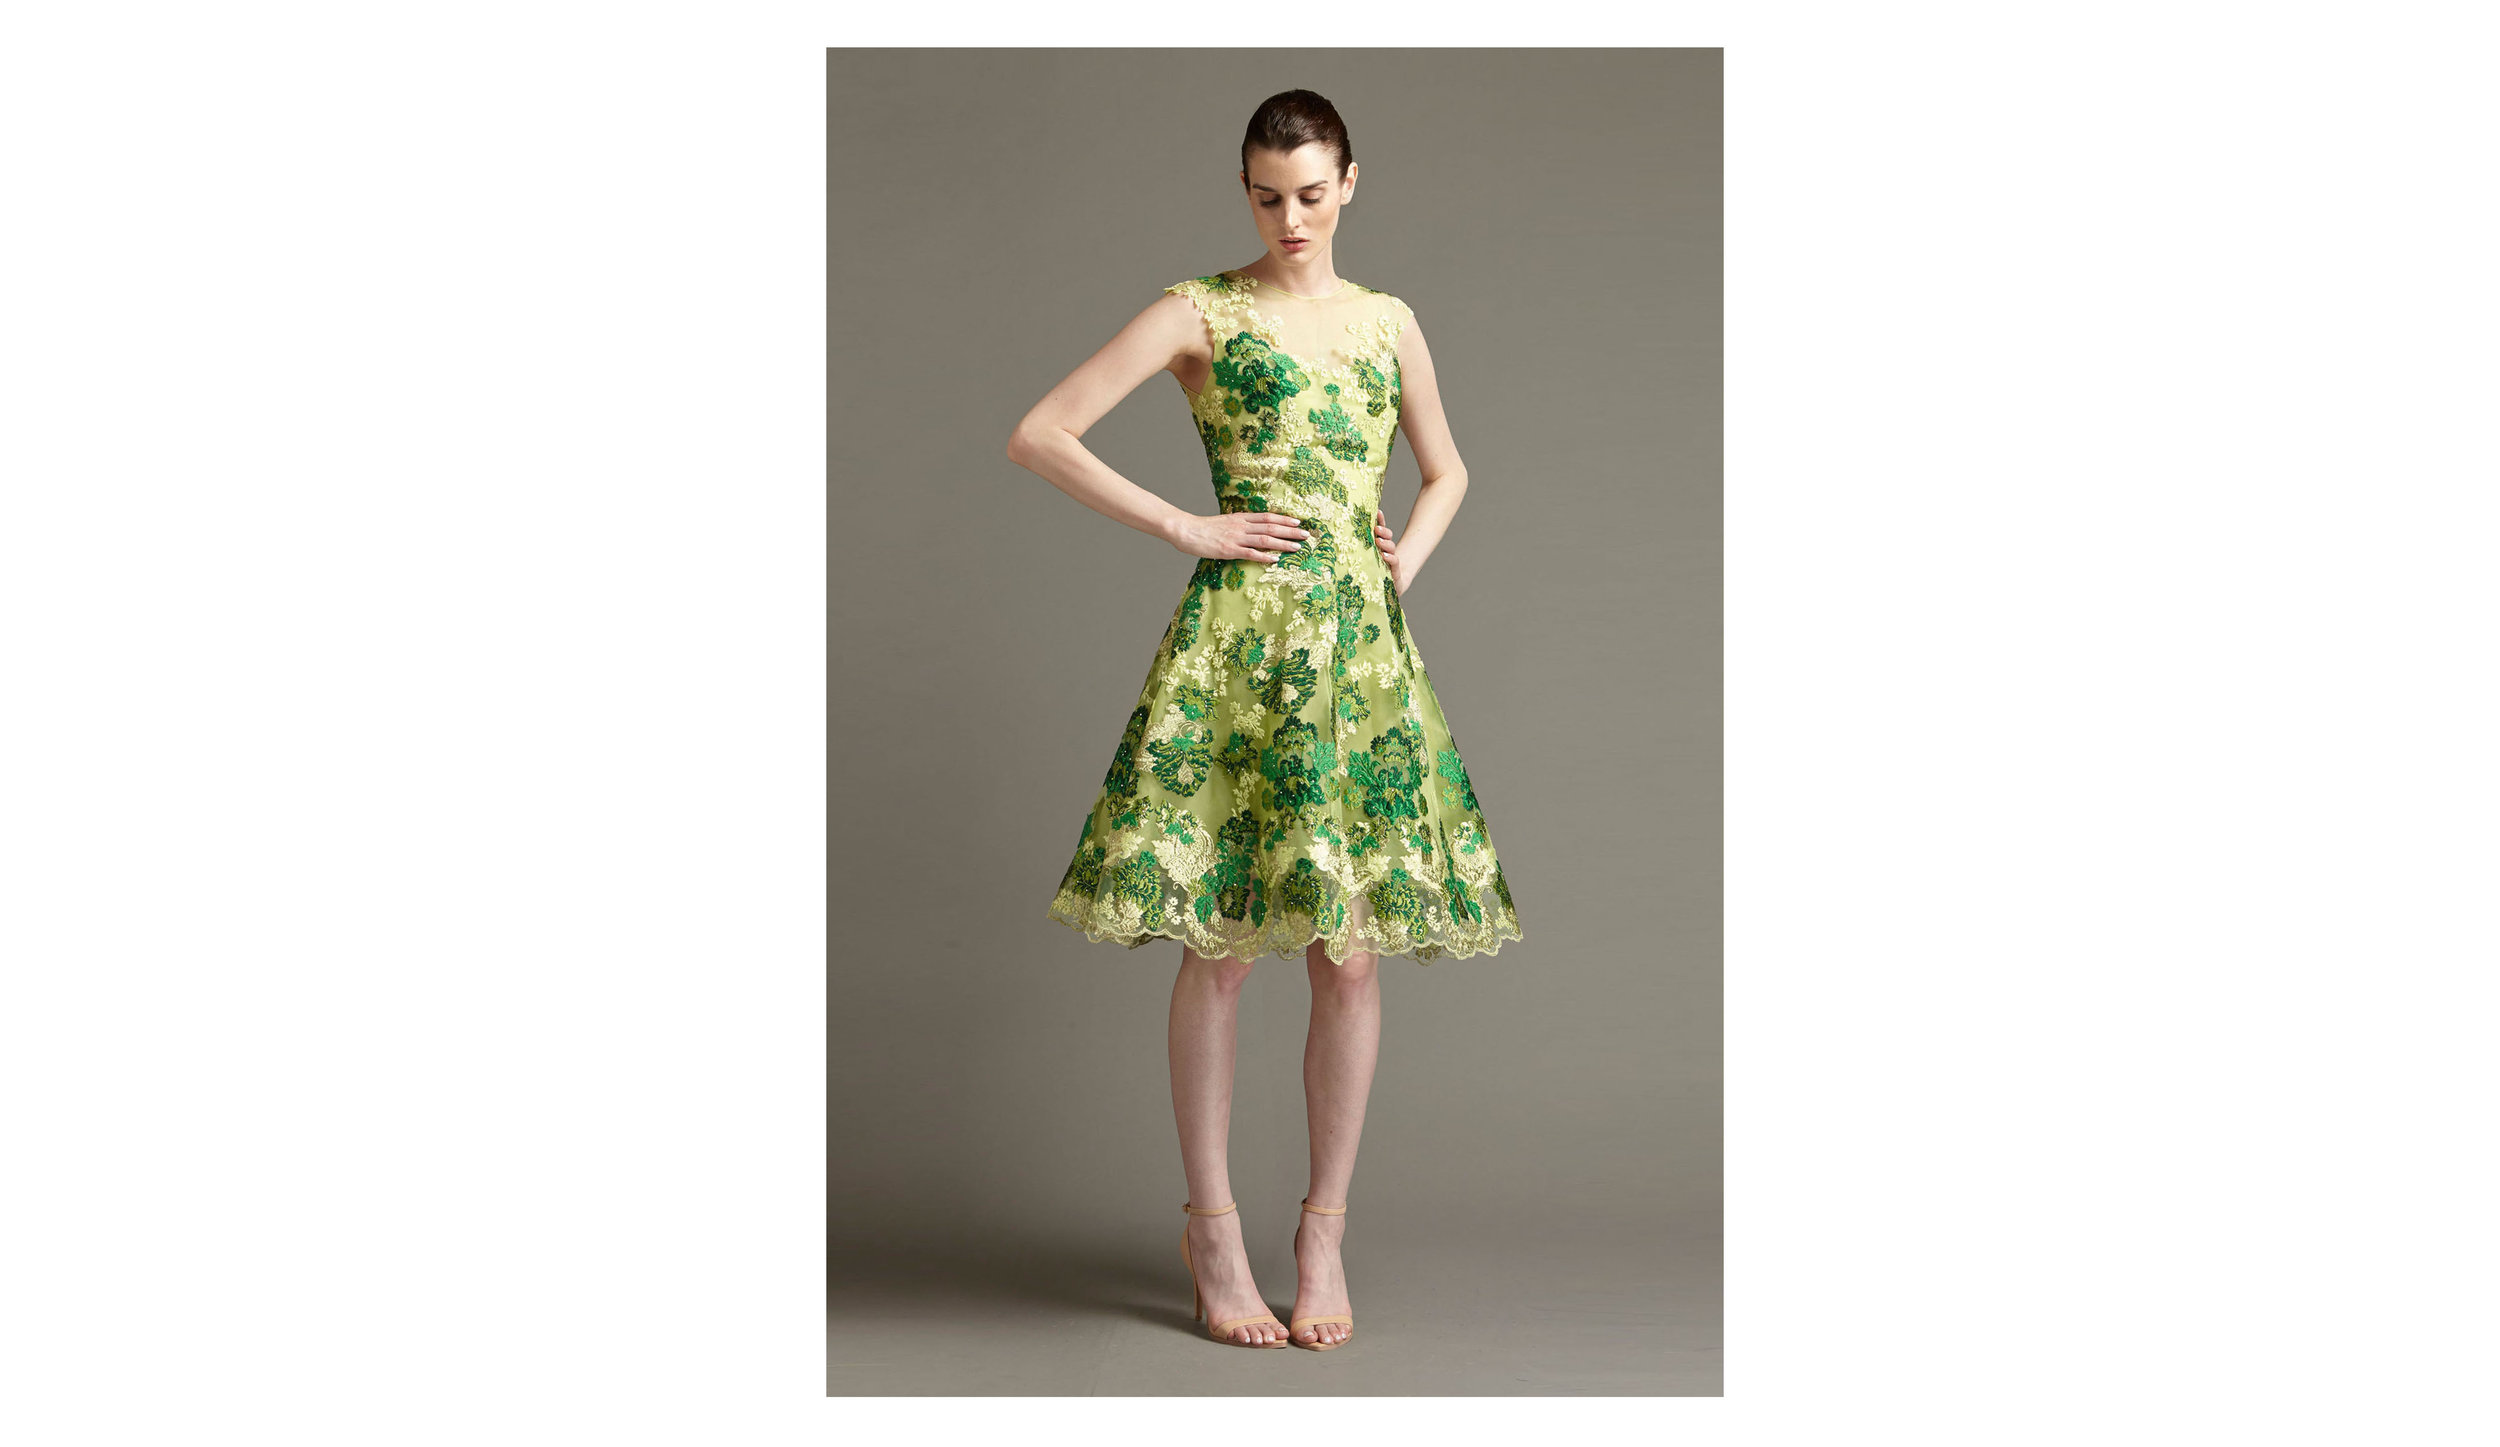 green lace cocktail dress.jpg